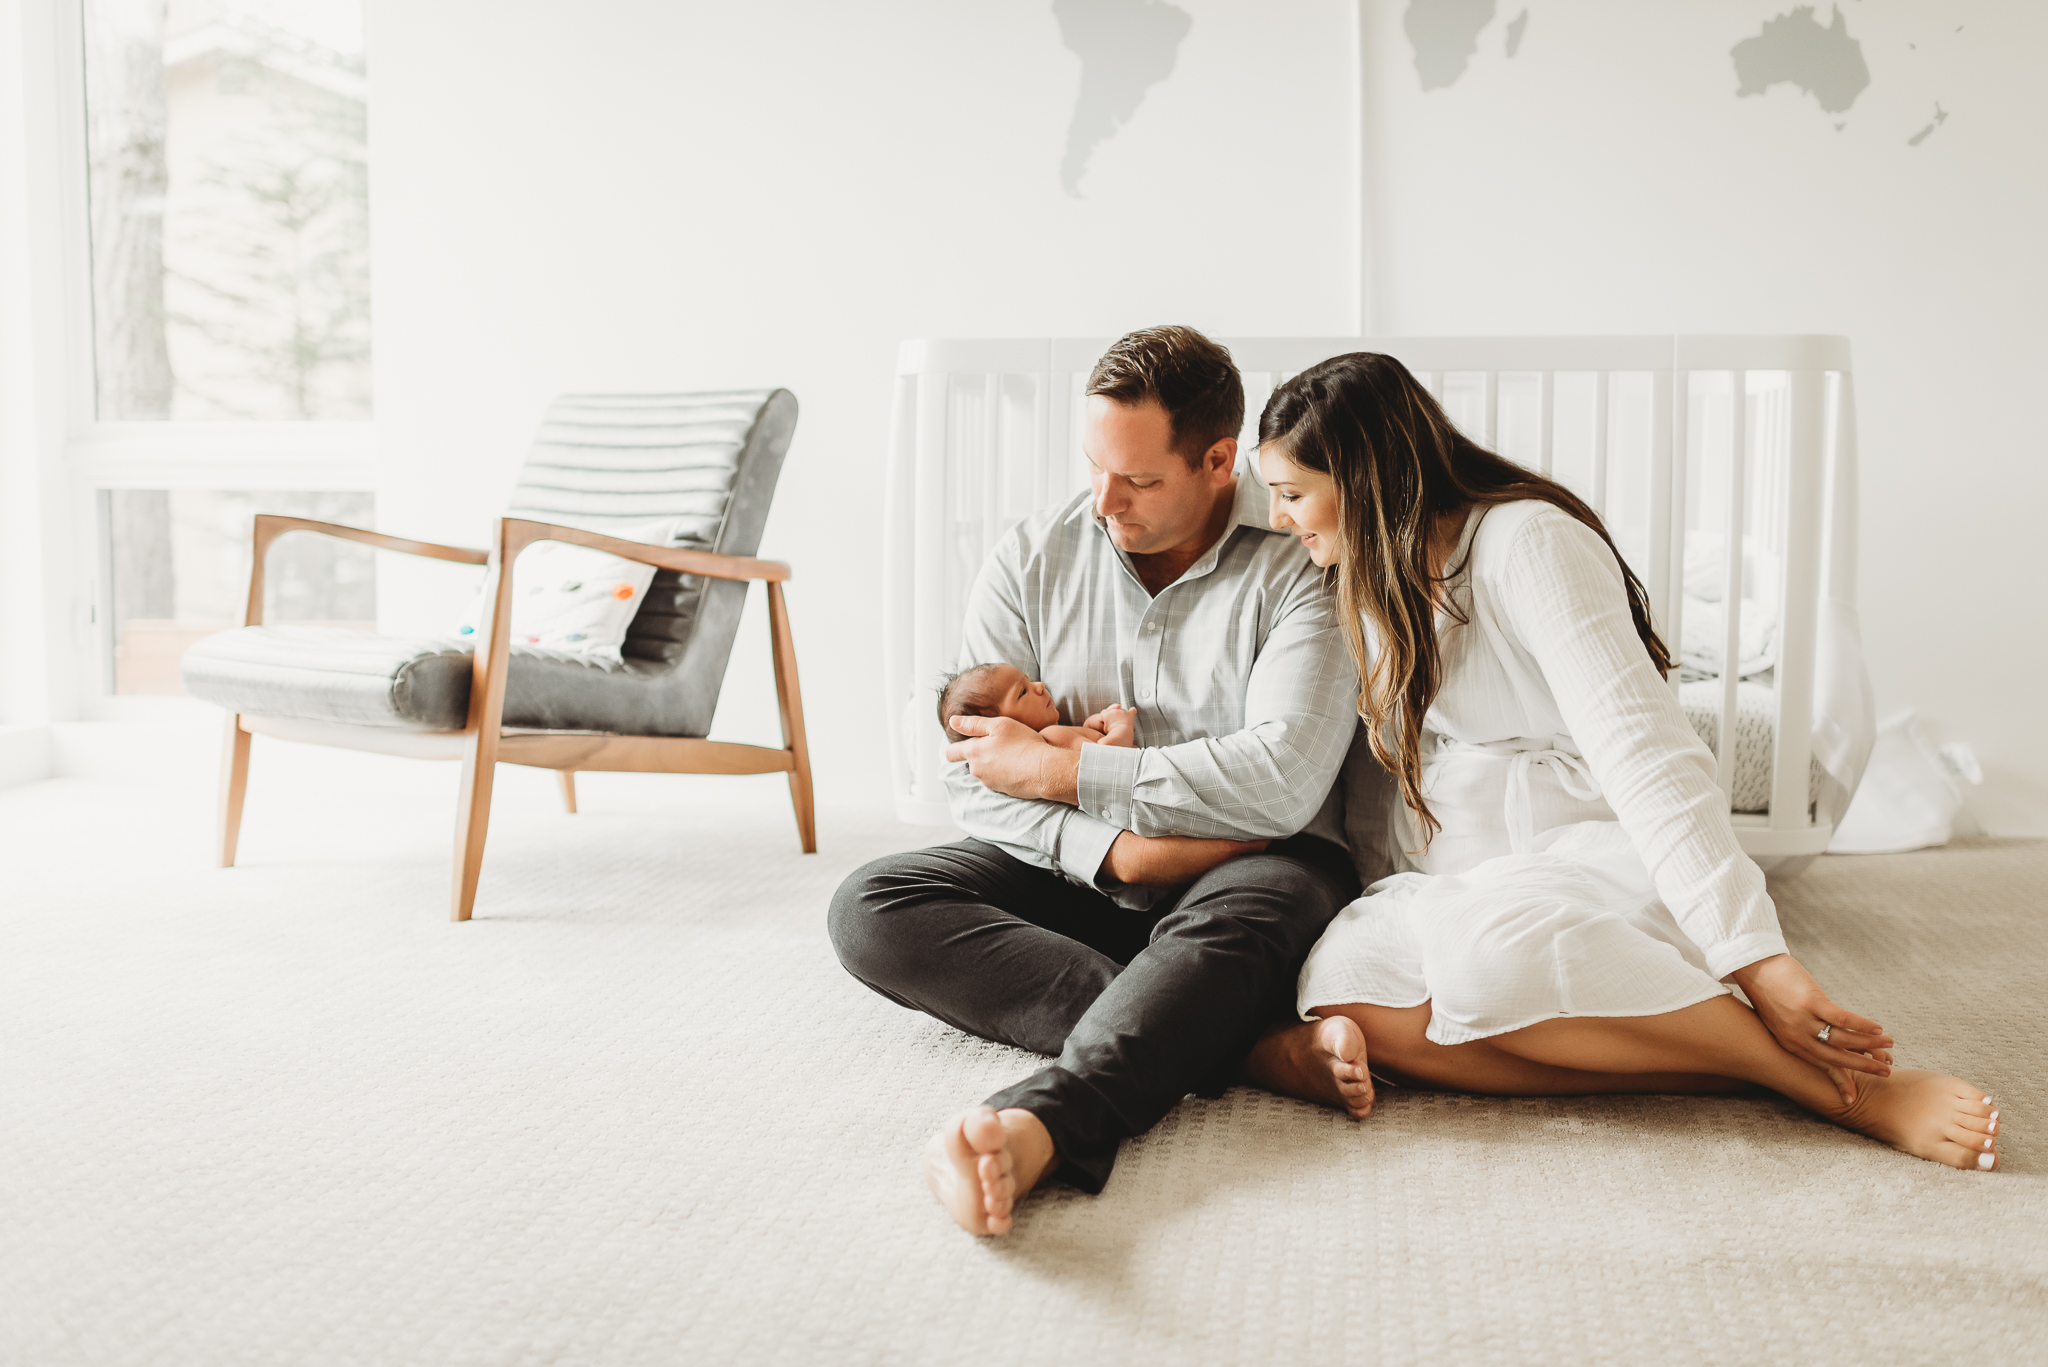 In home Lifestyle sessions - lets document you and your family in the space you spend the most time in. Your home doesn't need to be spotless lets focus on connection! $600